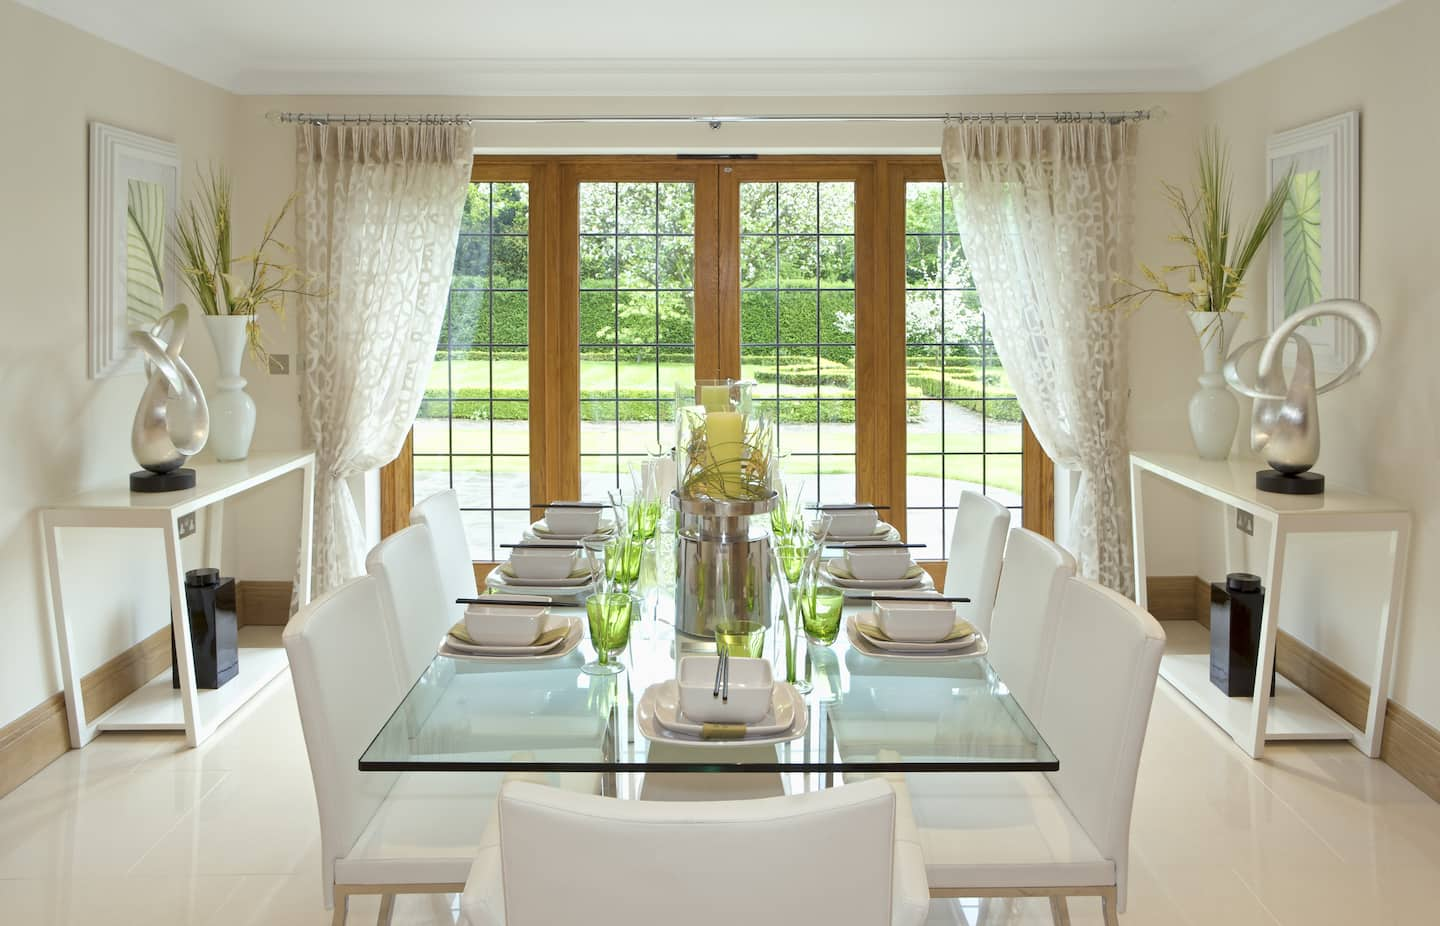 formal living room curtains red and brown 15 dining ideas angie s list contemporary with white chairs glass table garden view through doors